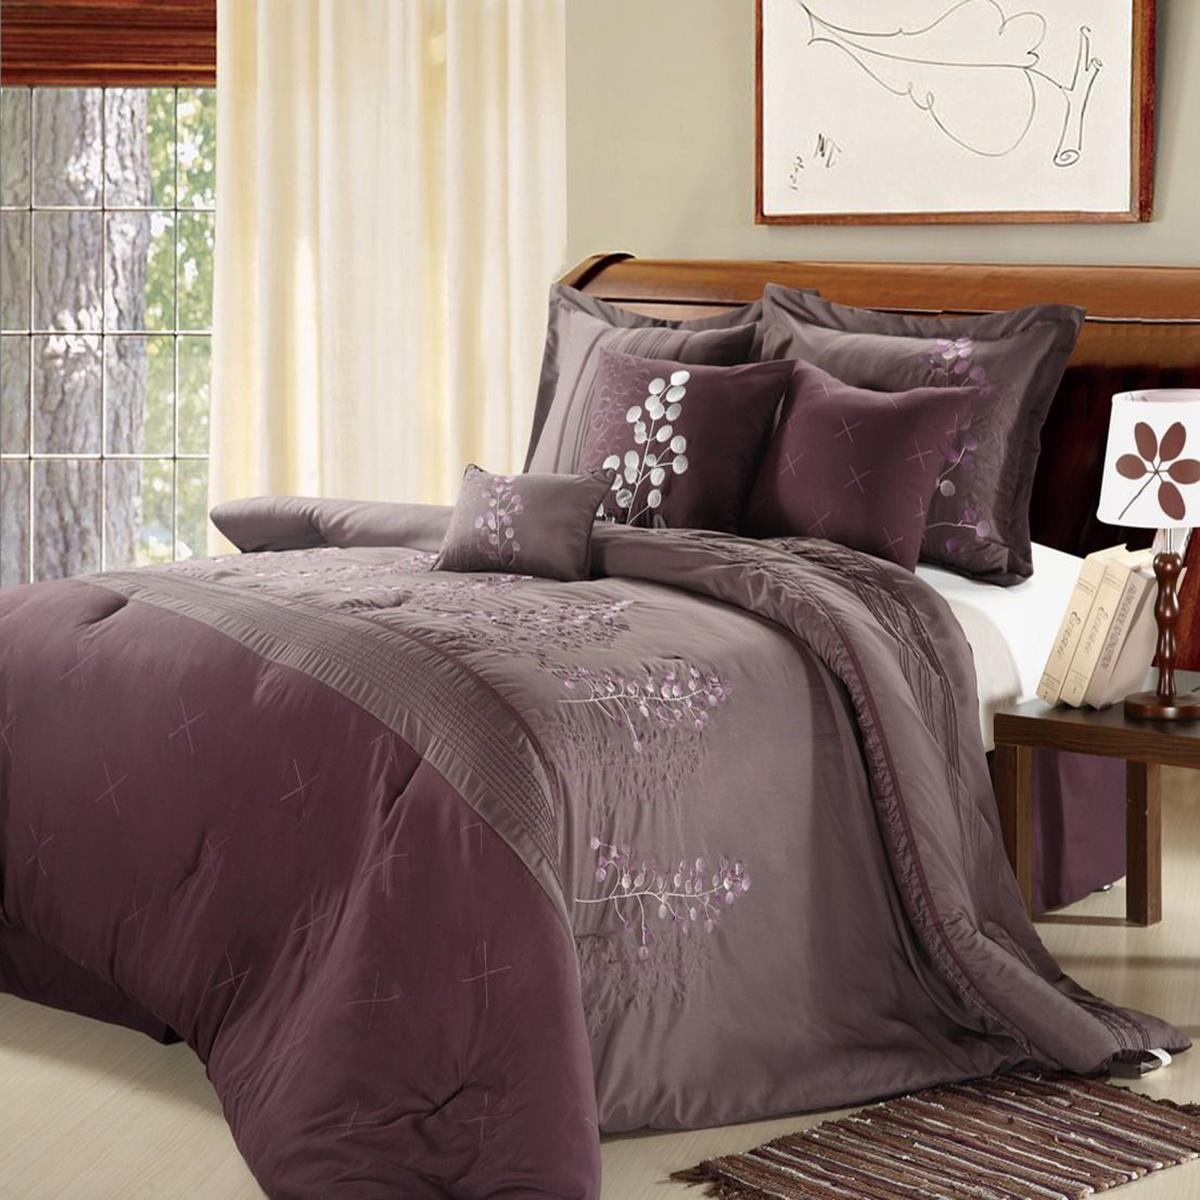 Poppy Flower Plum Amp Purple 8 Piece Queen Comforter Bed In